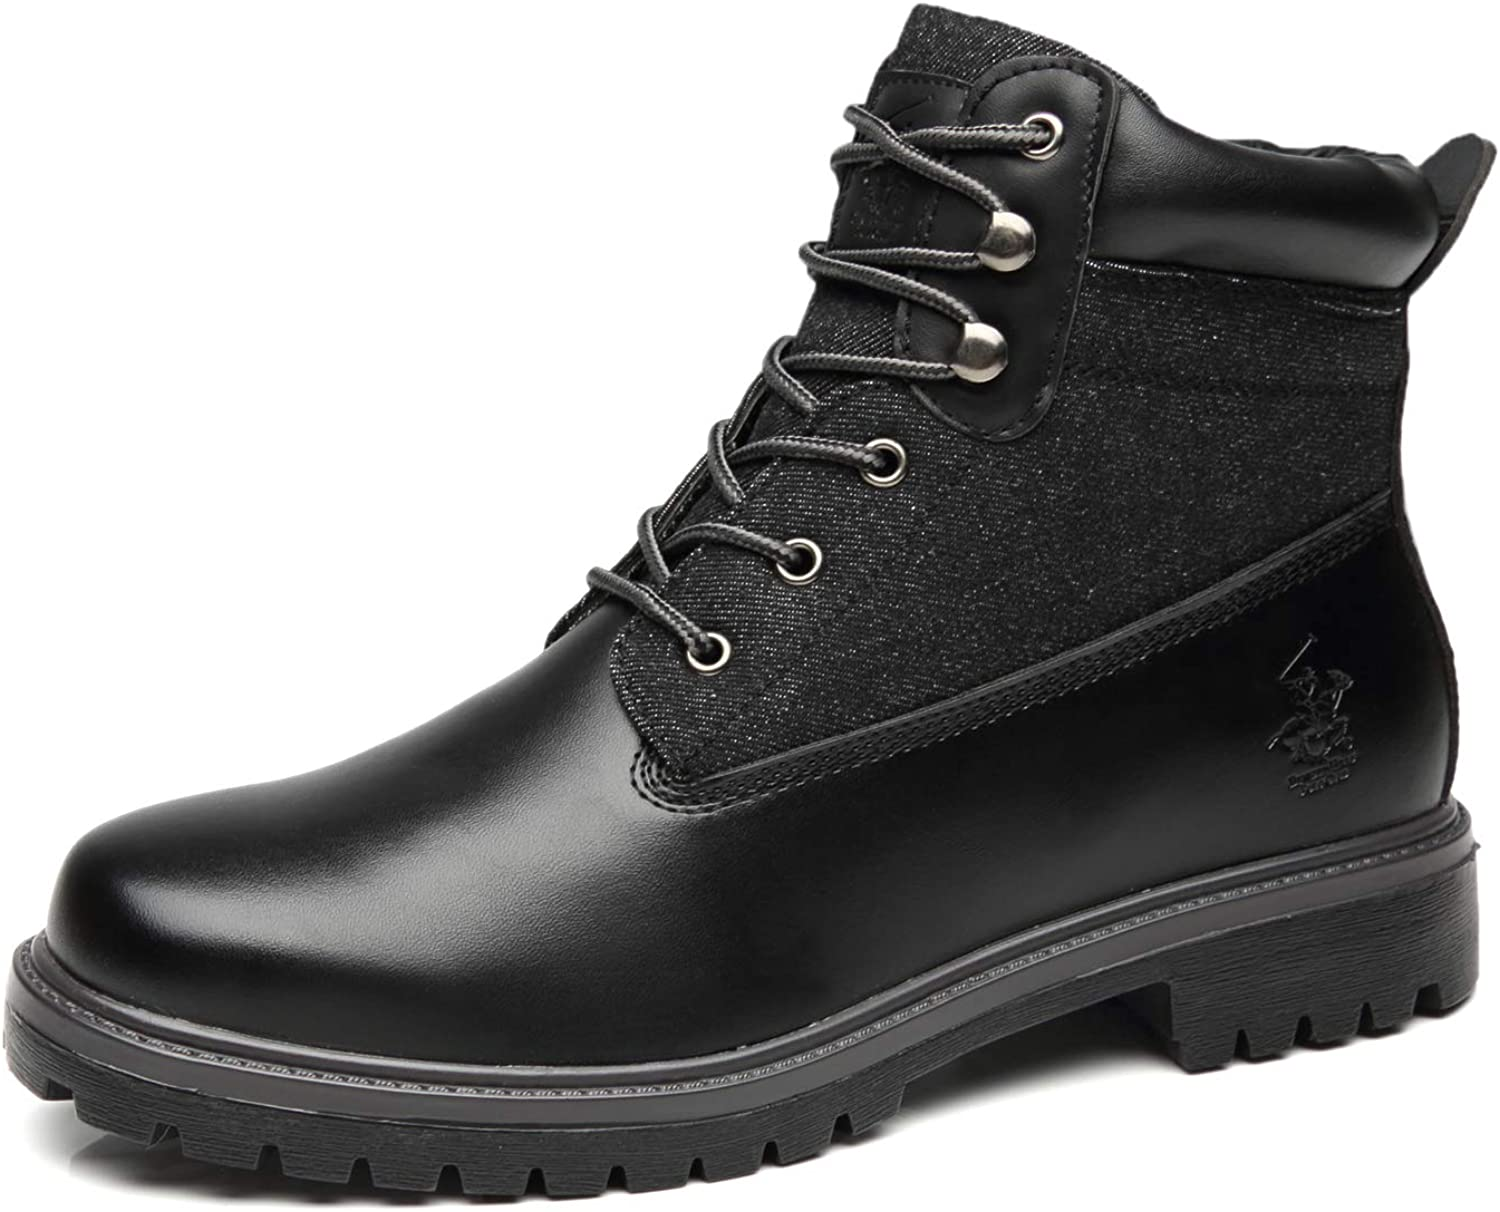 Boots Casual Comfortable Dress Boots